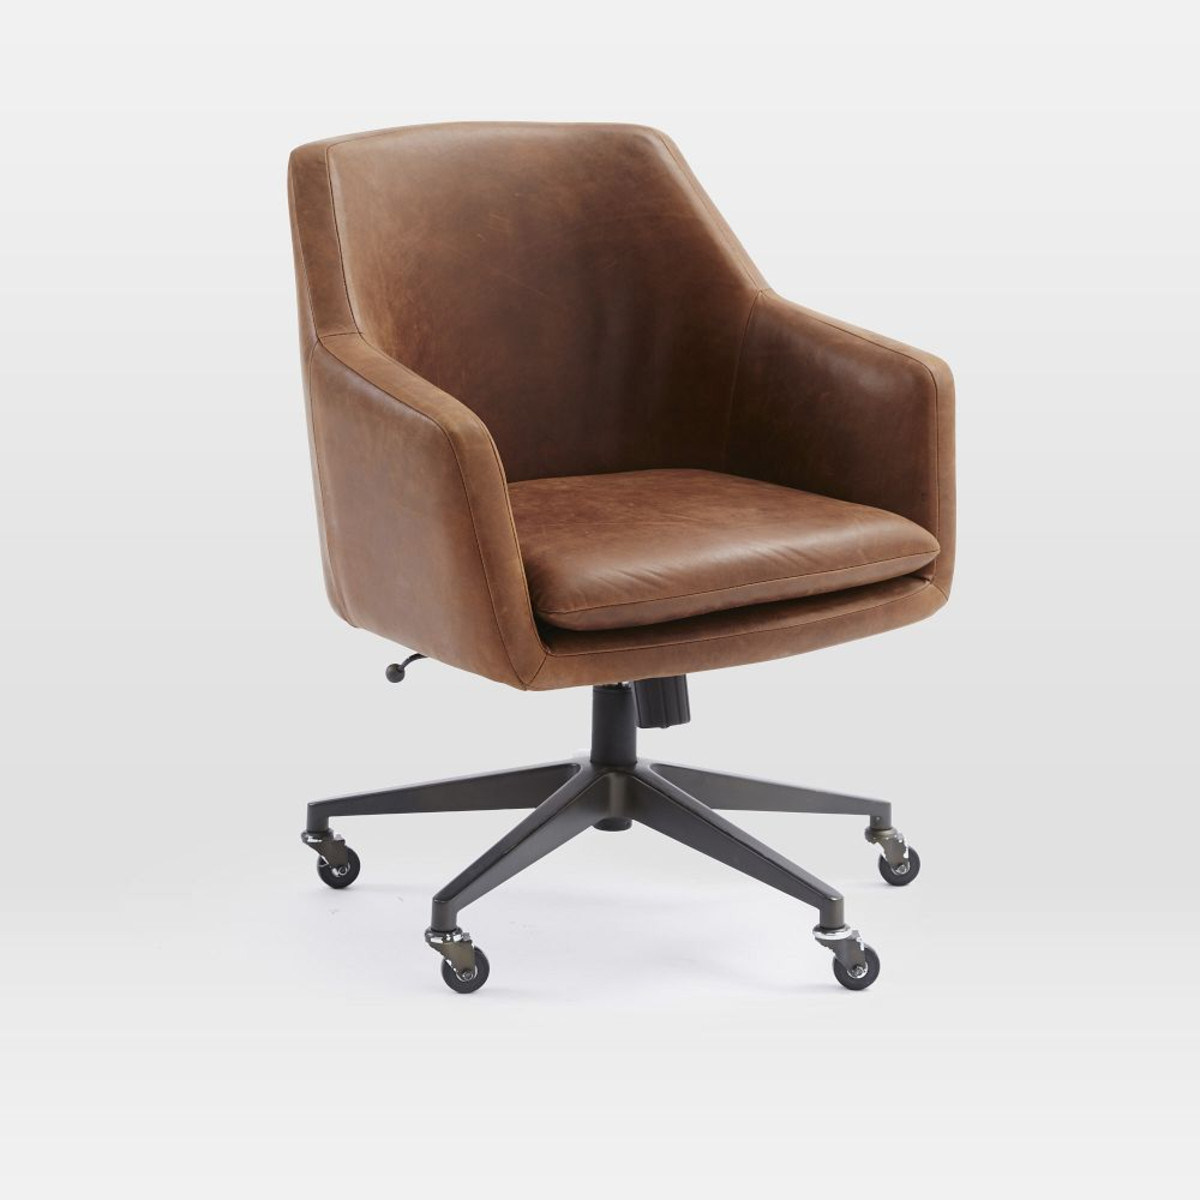 Best ideas about Leather Office Chair . Save or Pin Helvetica Leather fice Chair Now.